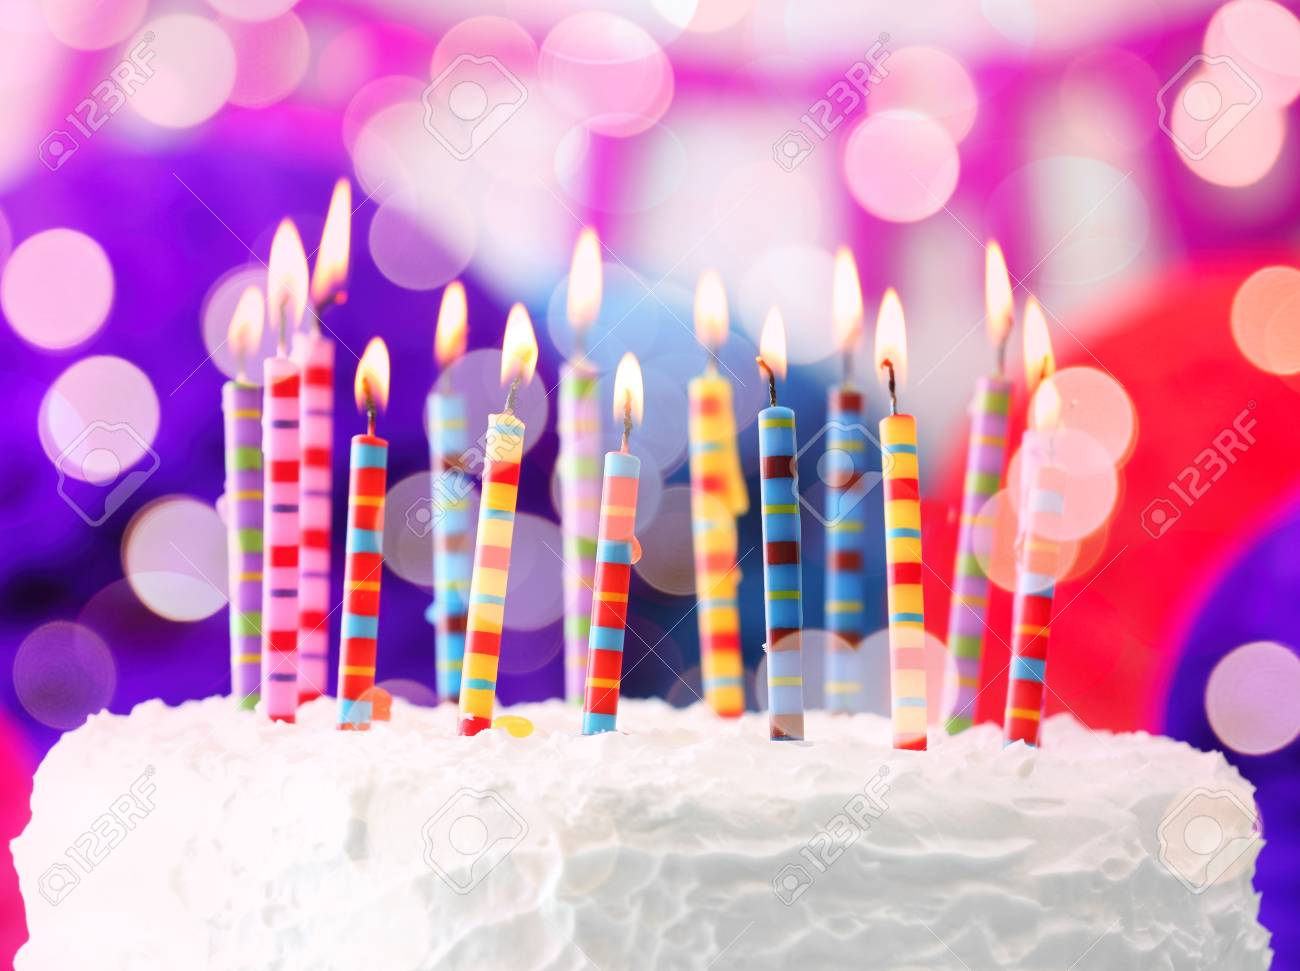 Lighted Candles On Birthday Cake Closeup Stock Photo Picture And Royalty Free Image Image 88596828